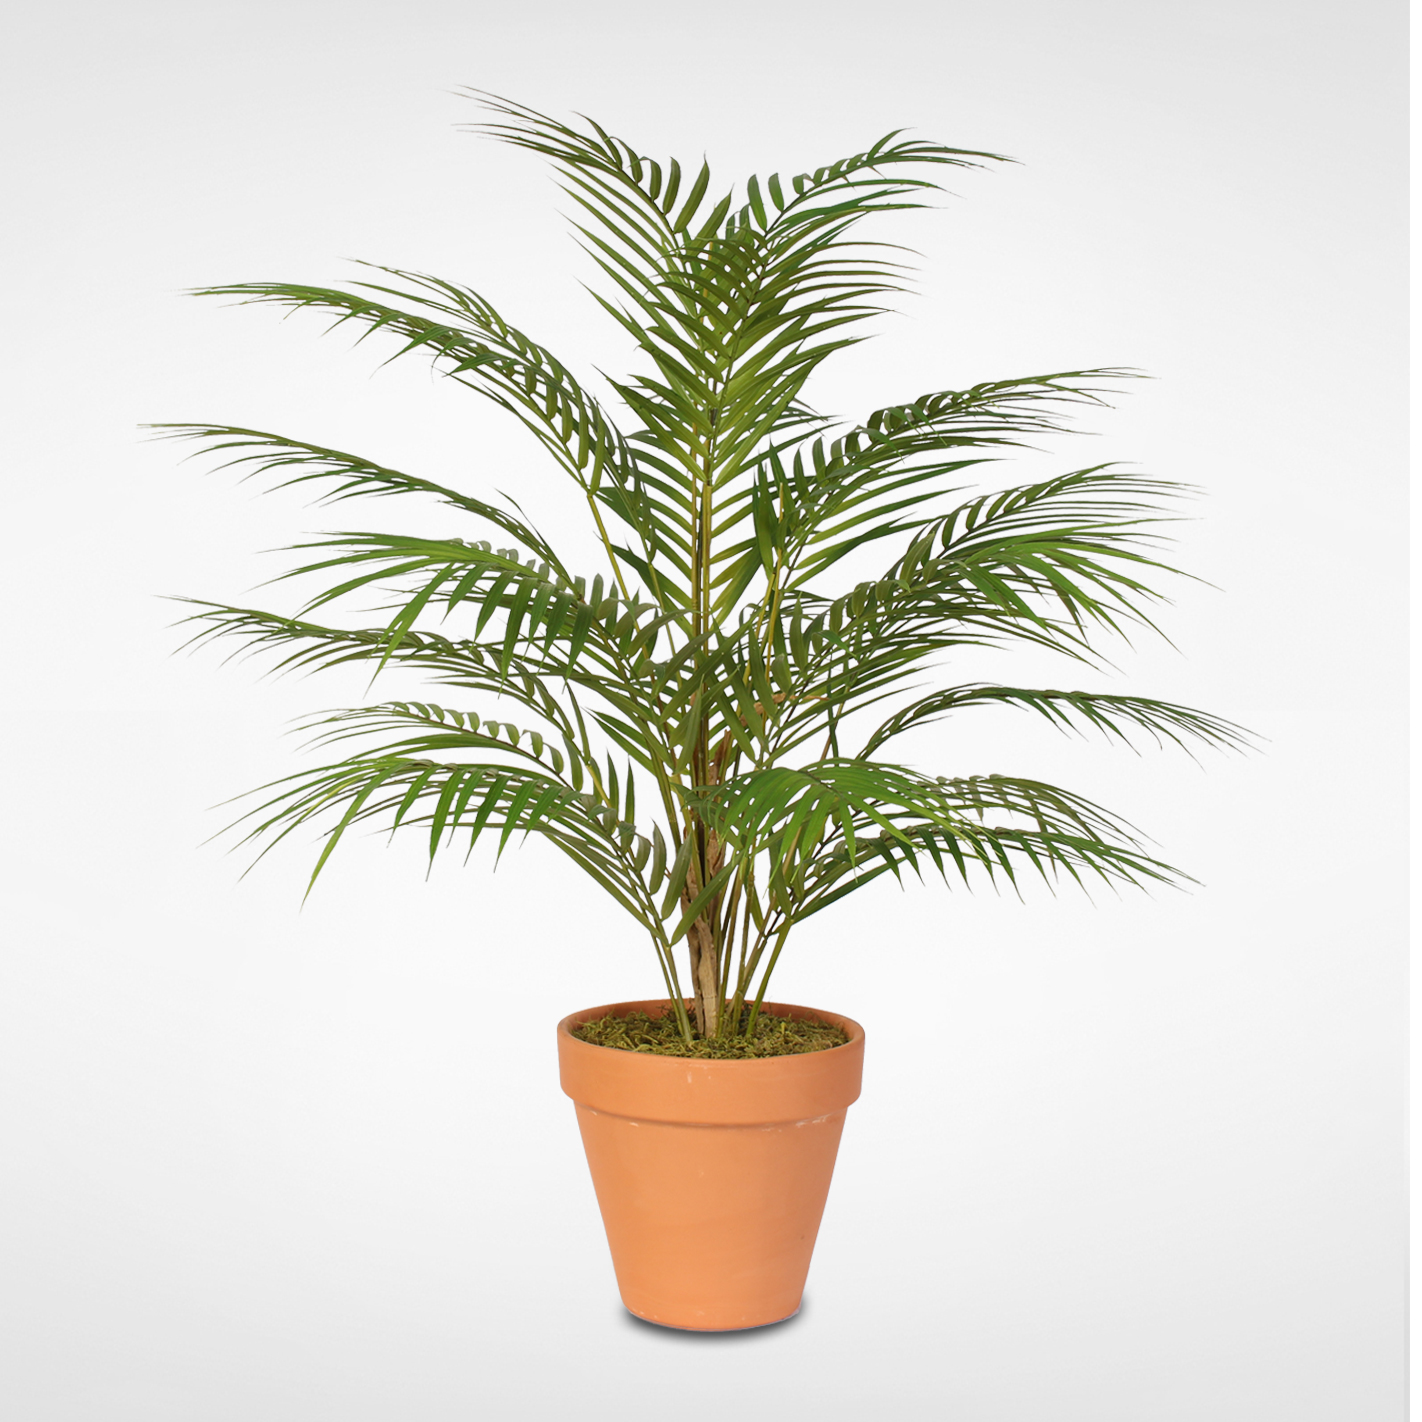 Real Touch Areca Palm Plant in a Small Black Clay Pot